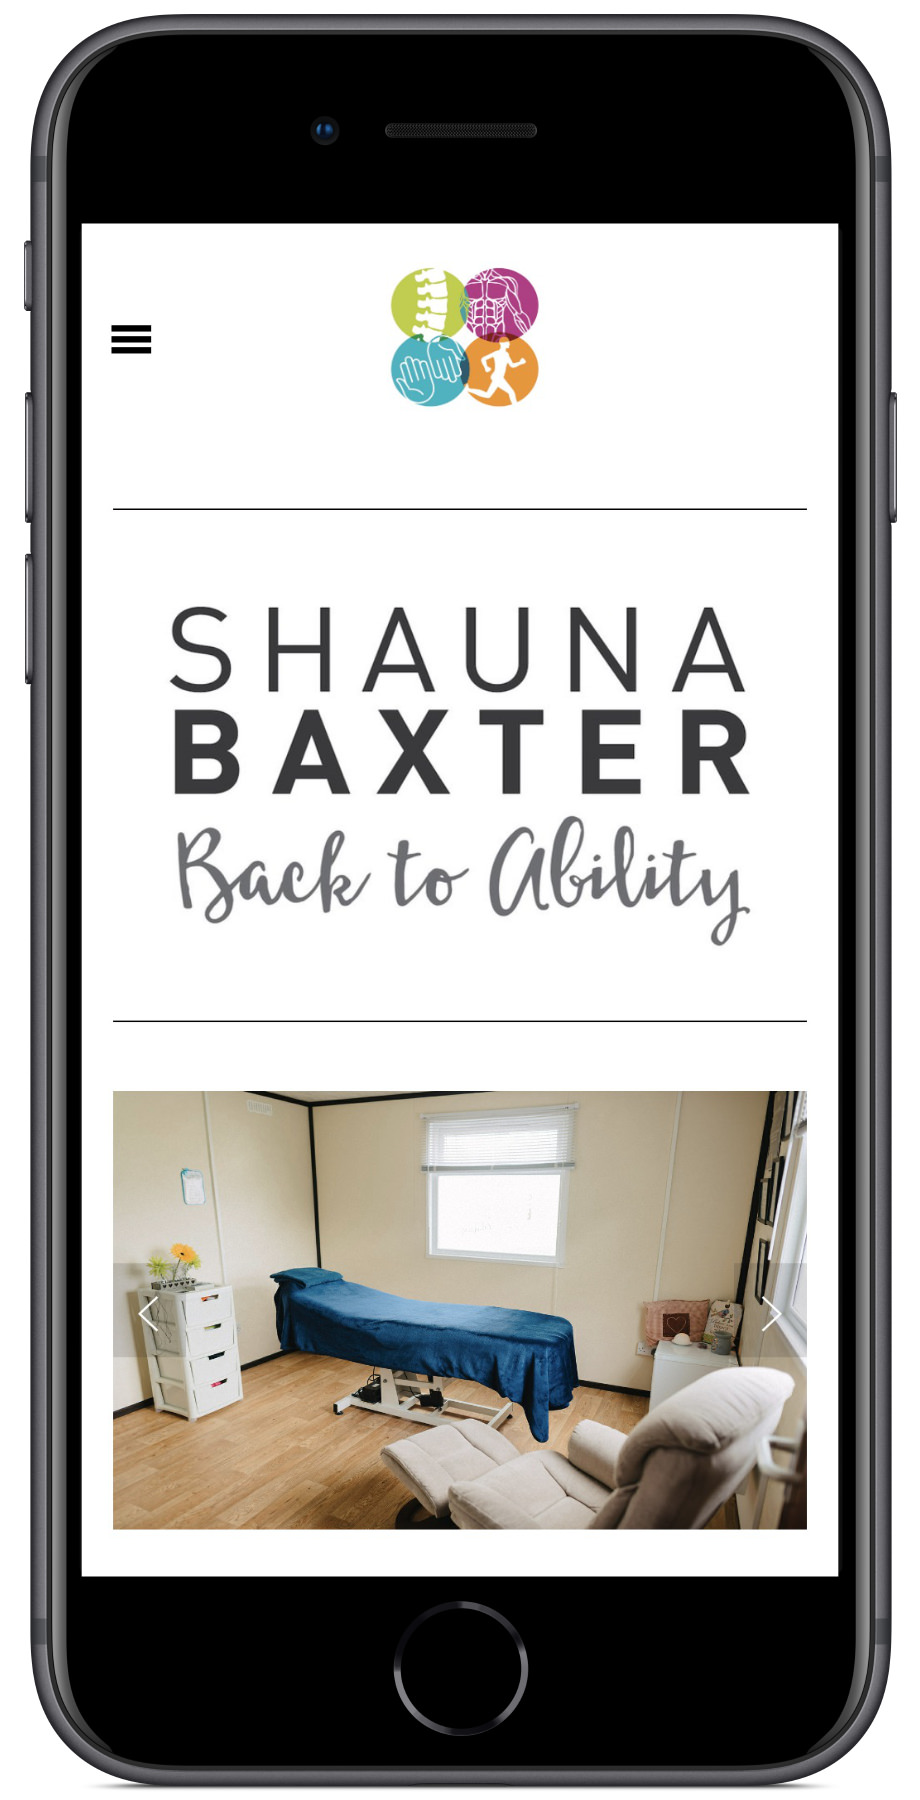 Back To Ability - iPhone.jpg